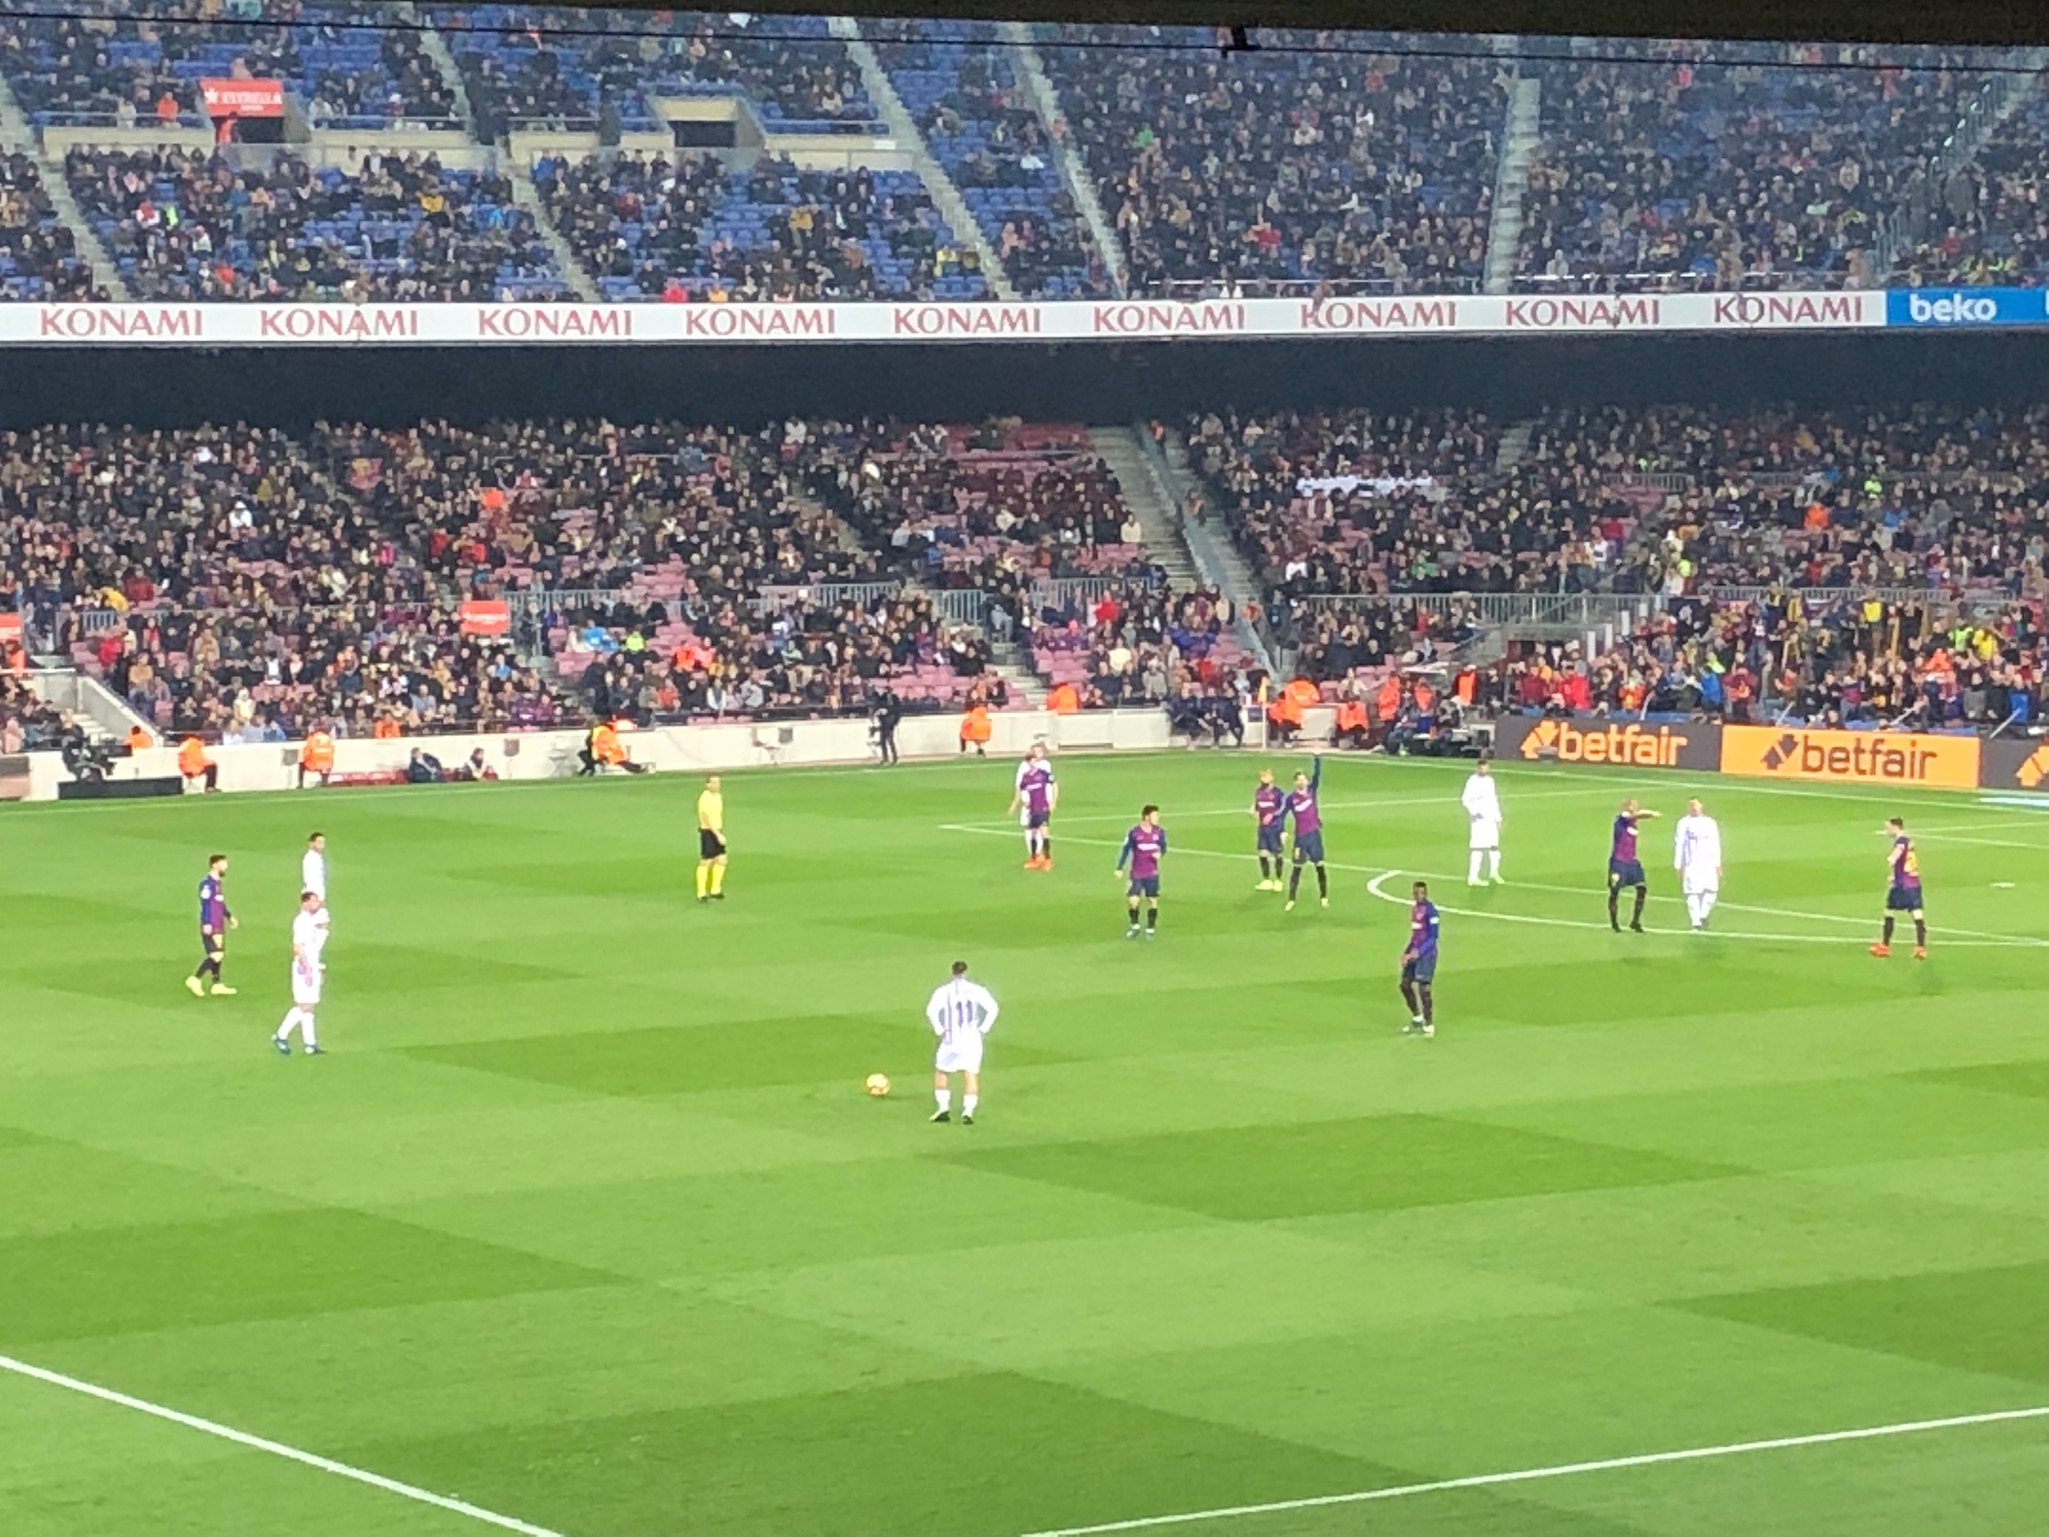 A photo from our awesome seats at the game- Messi on the left side of the photo.